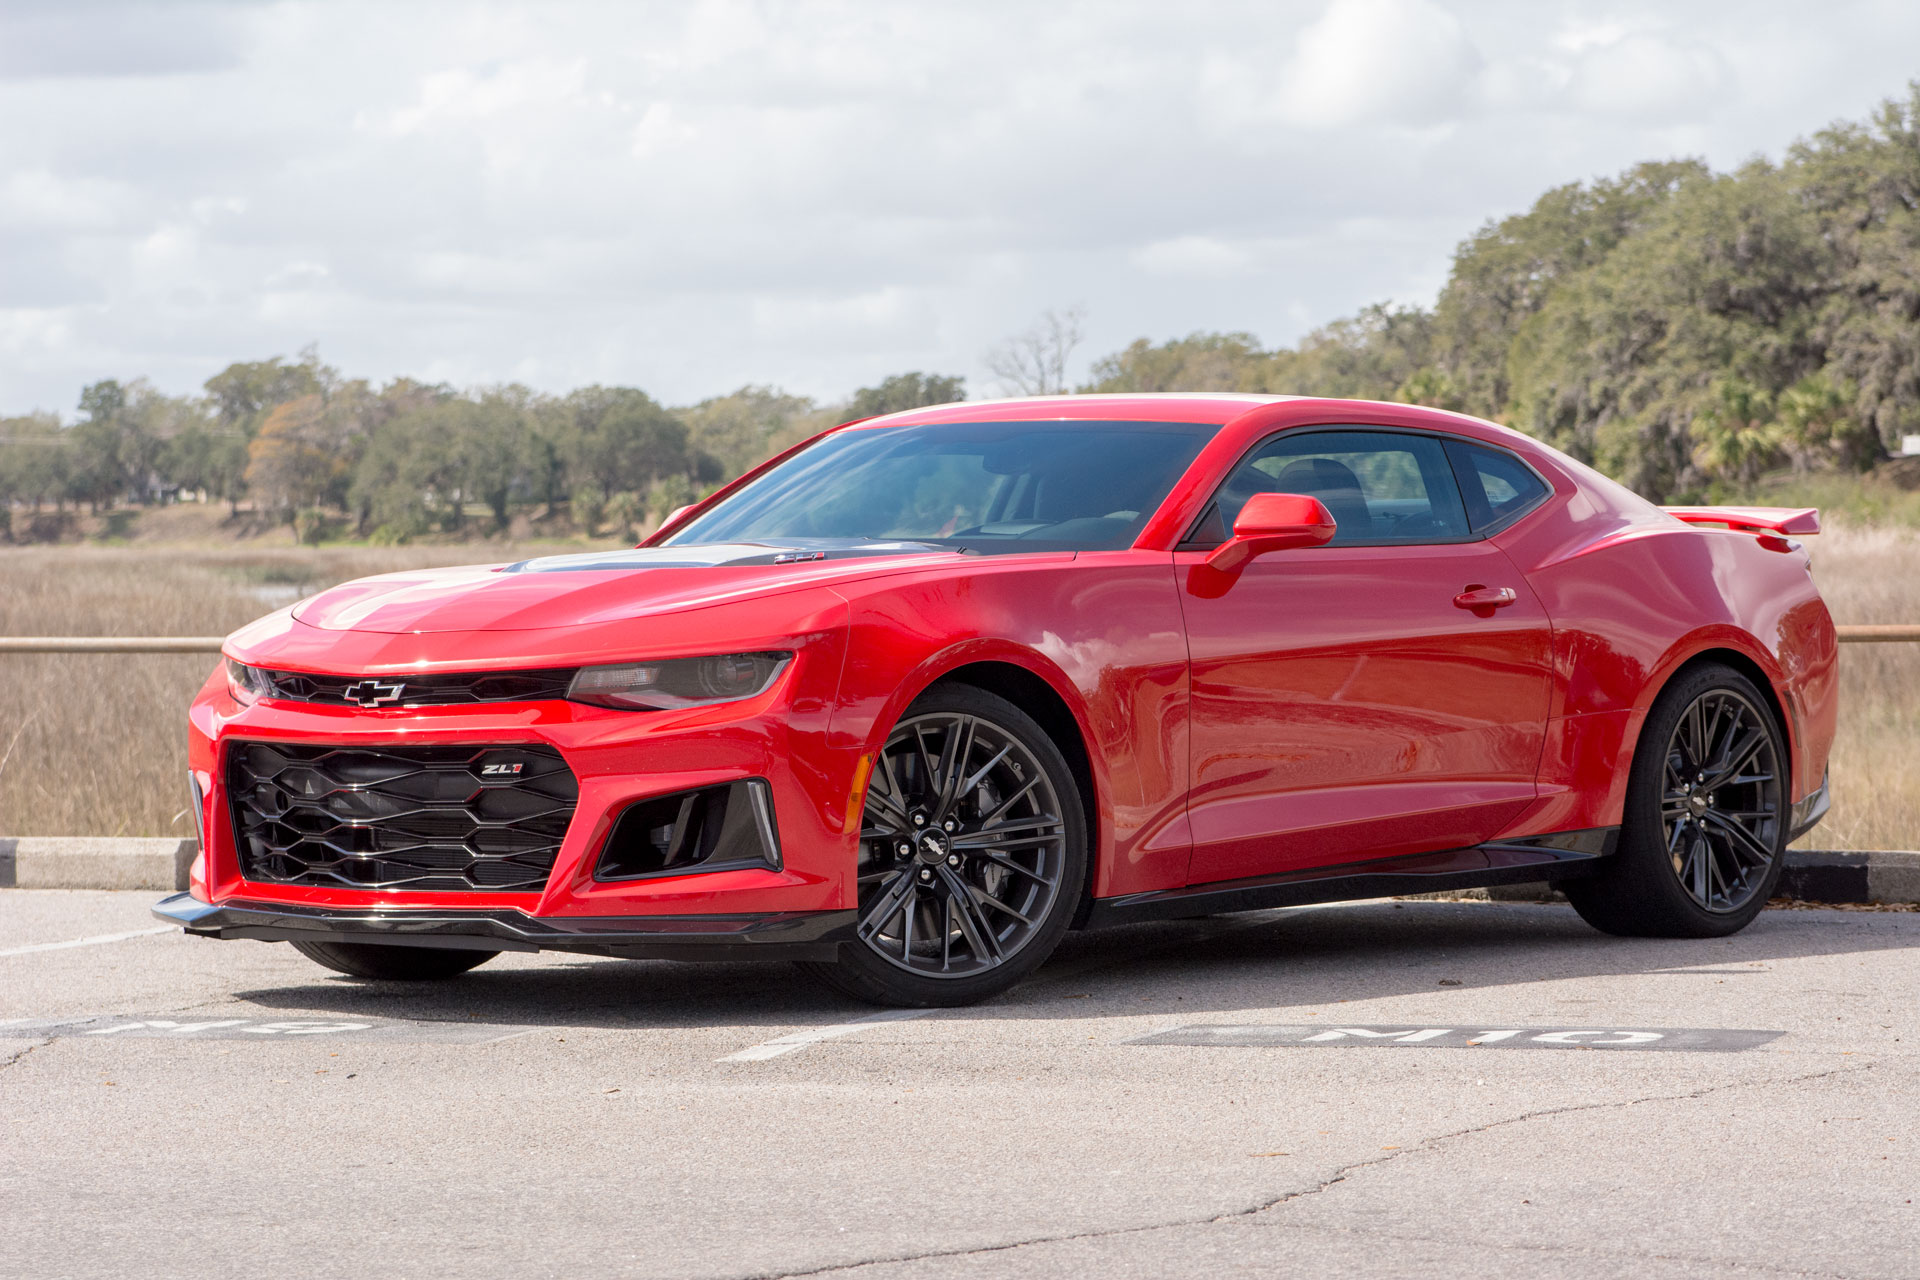 Hellcat 2018 Chevy Camaro >> 2017 Chevrolet Camaro ZL1 first drive review: too fast to be fun